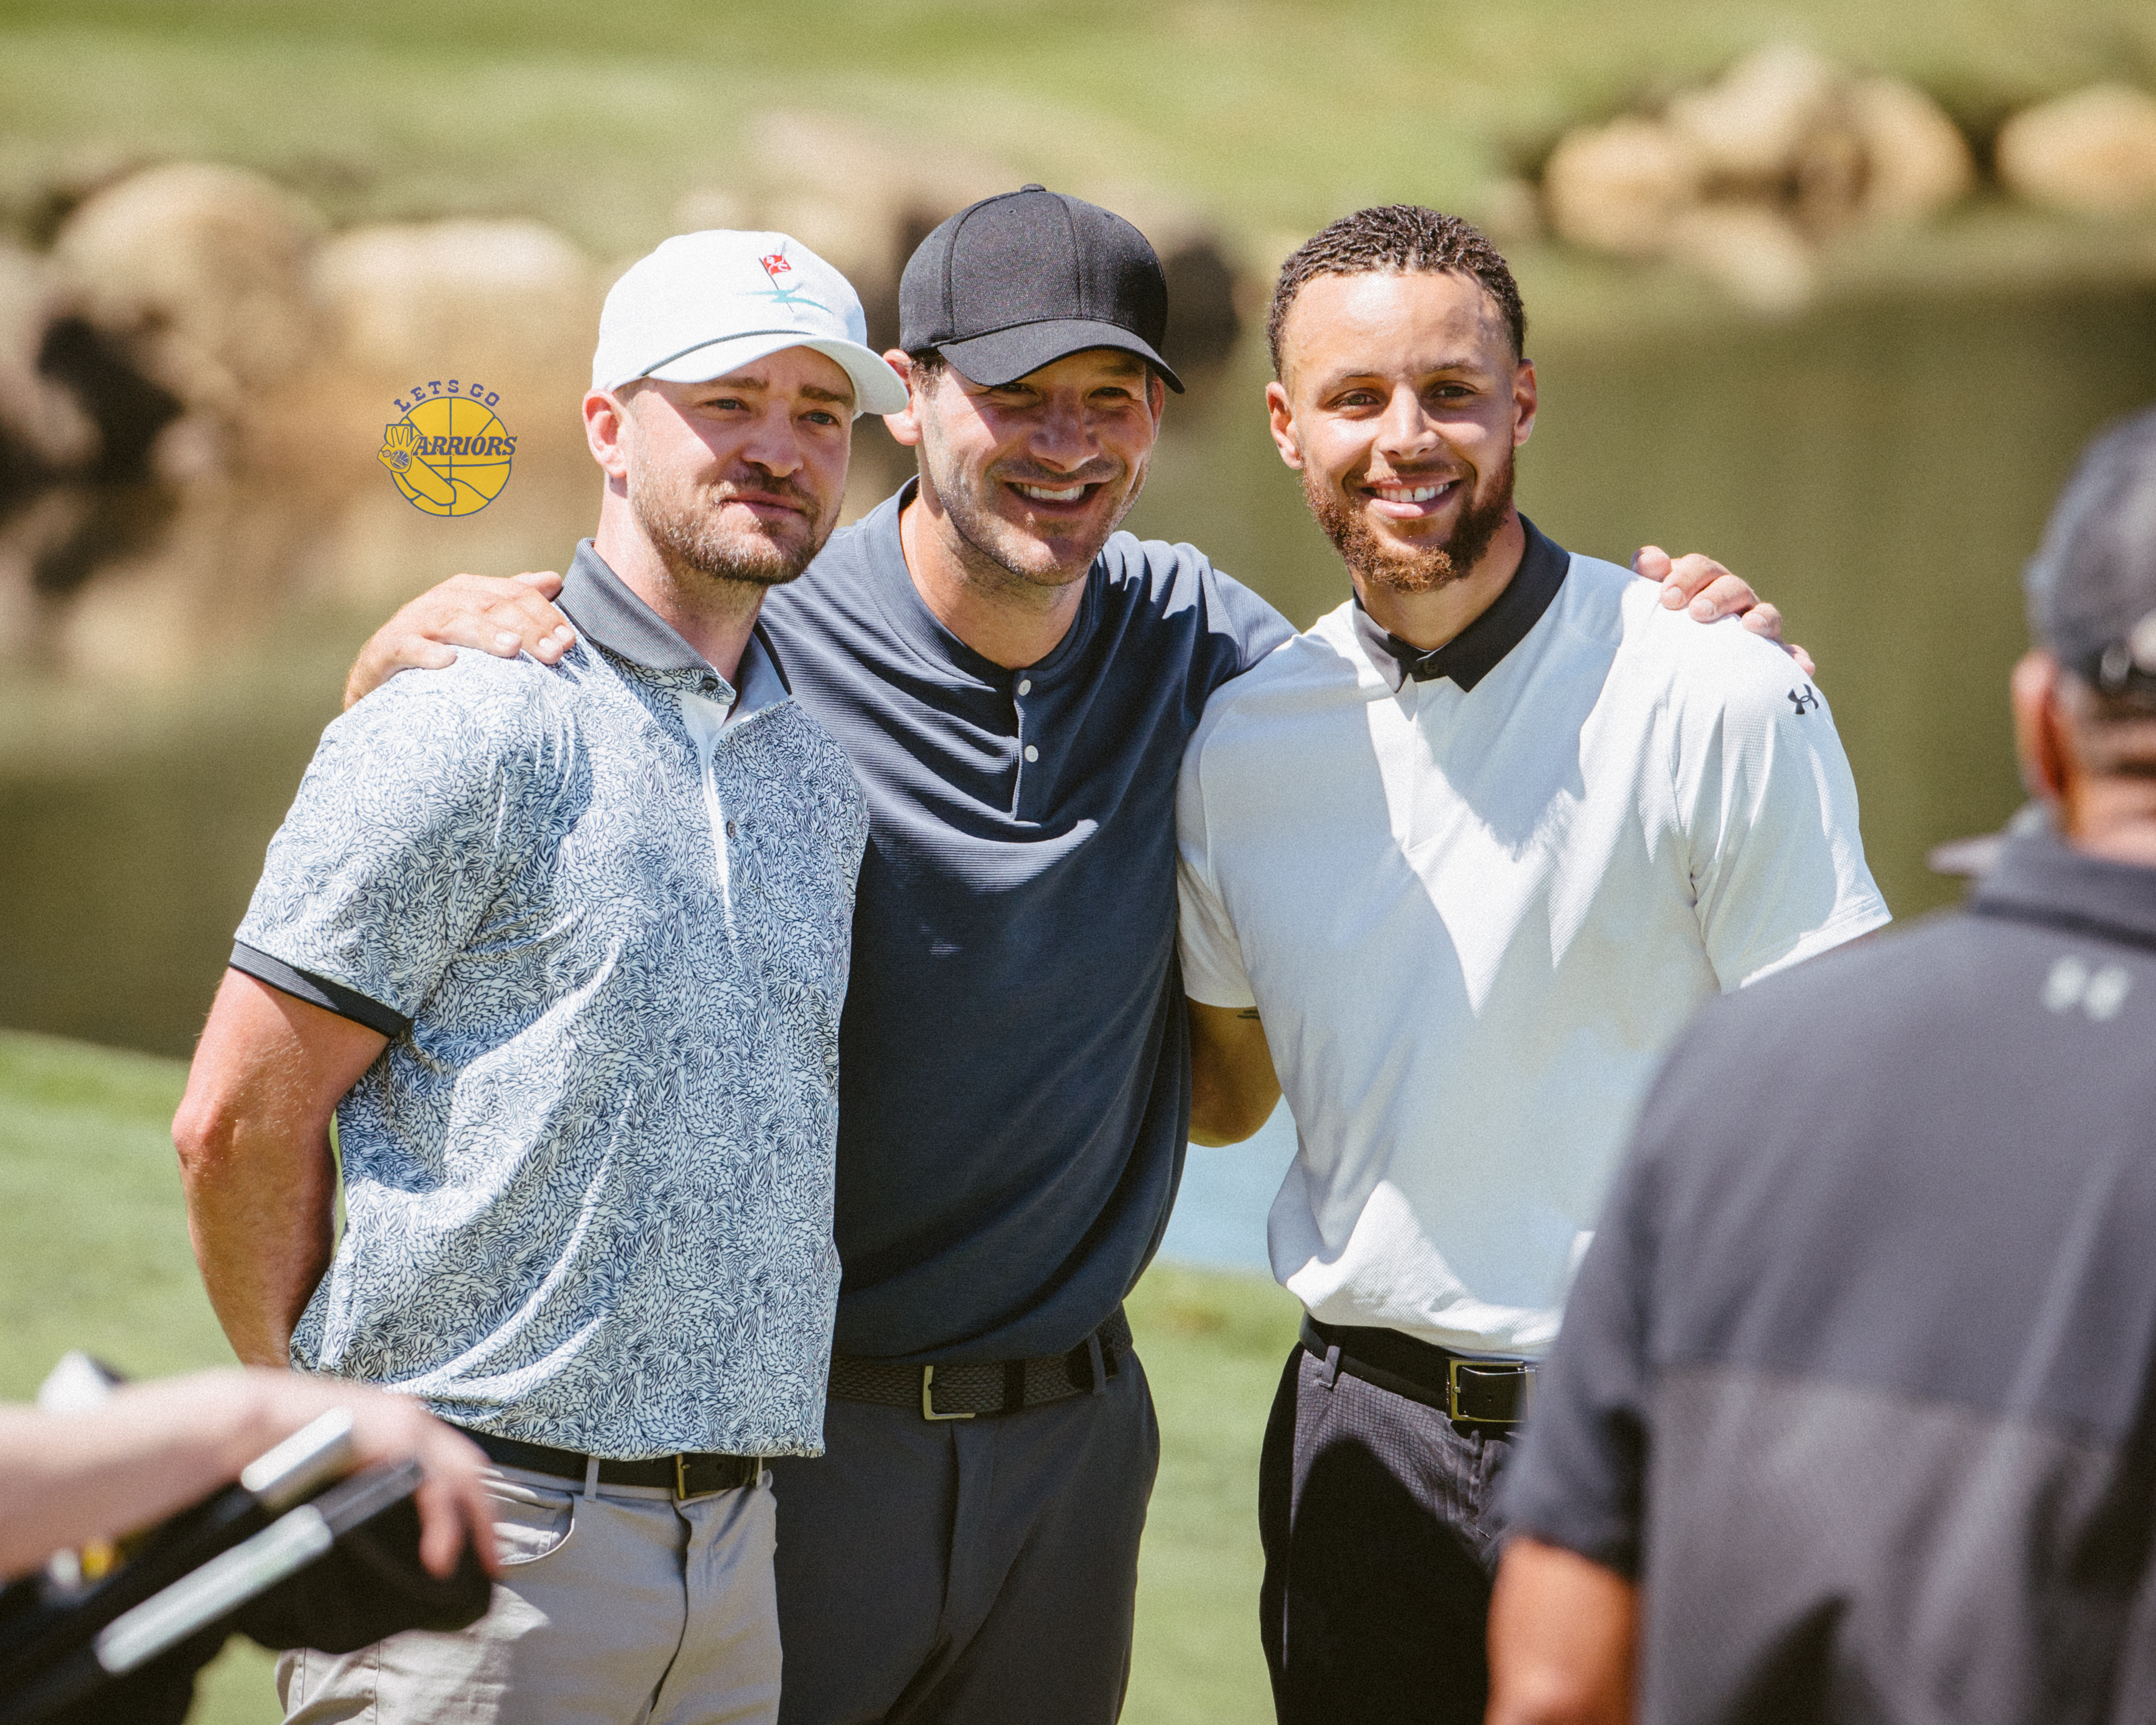 [PHOTO GALLERY] Steph Curry, Justin Timberlake, Tony Romo at Edgewood Tahoe American Century Championship - Round 1 Back 9